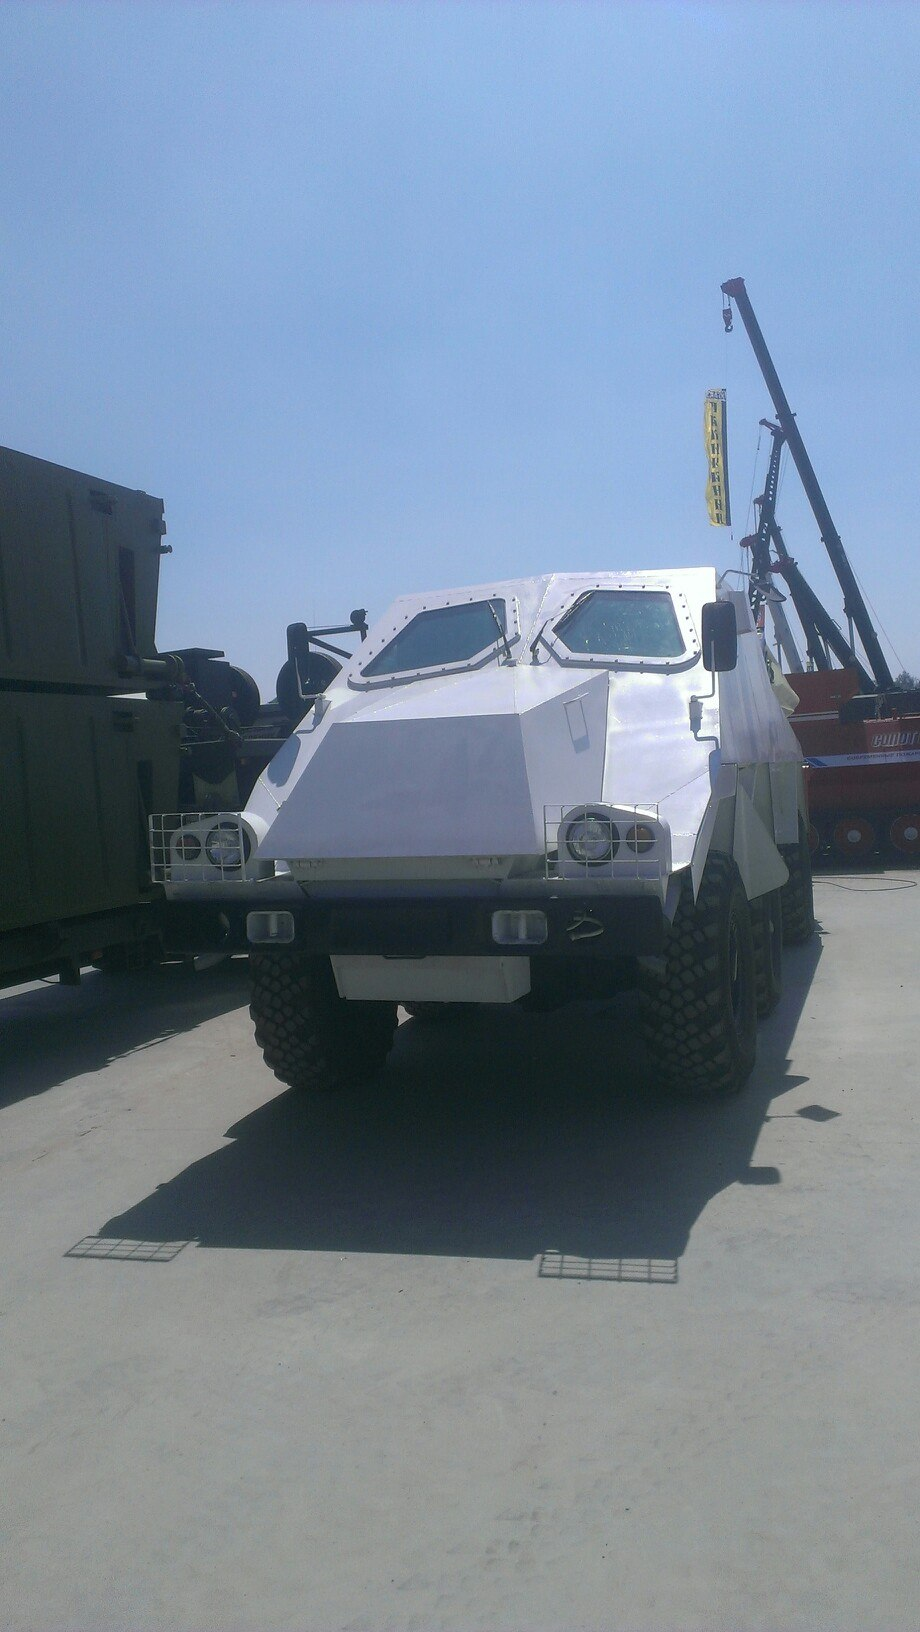 Russian Ground Forces: News #2 - Page 16 7klT8D_9M3w